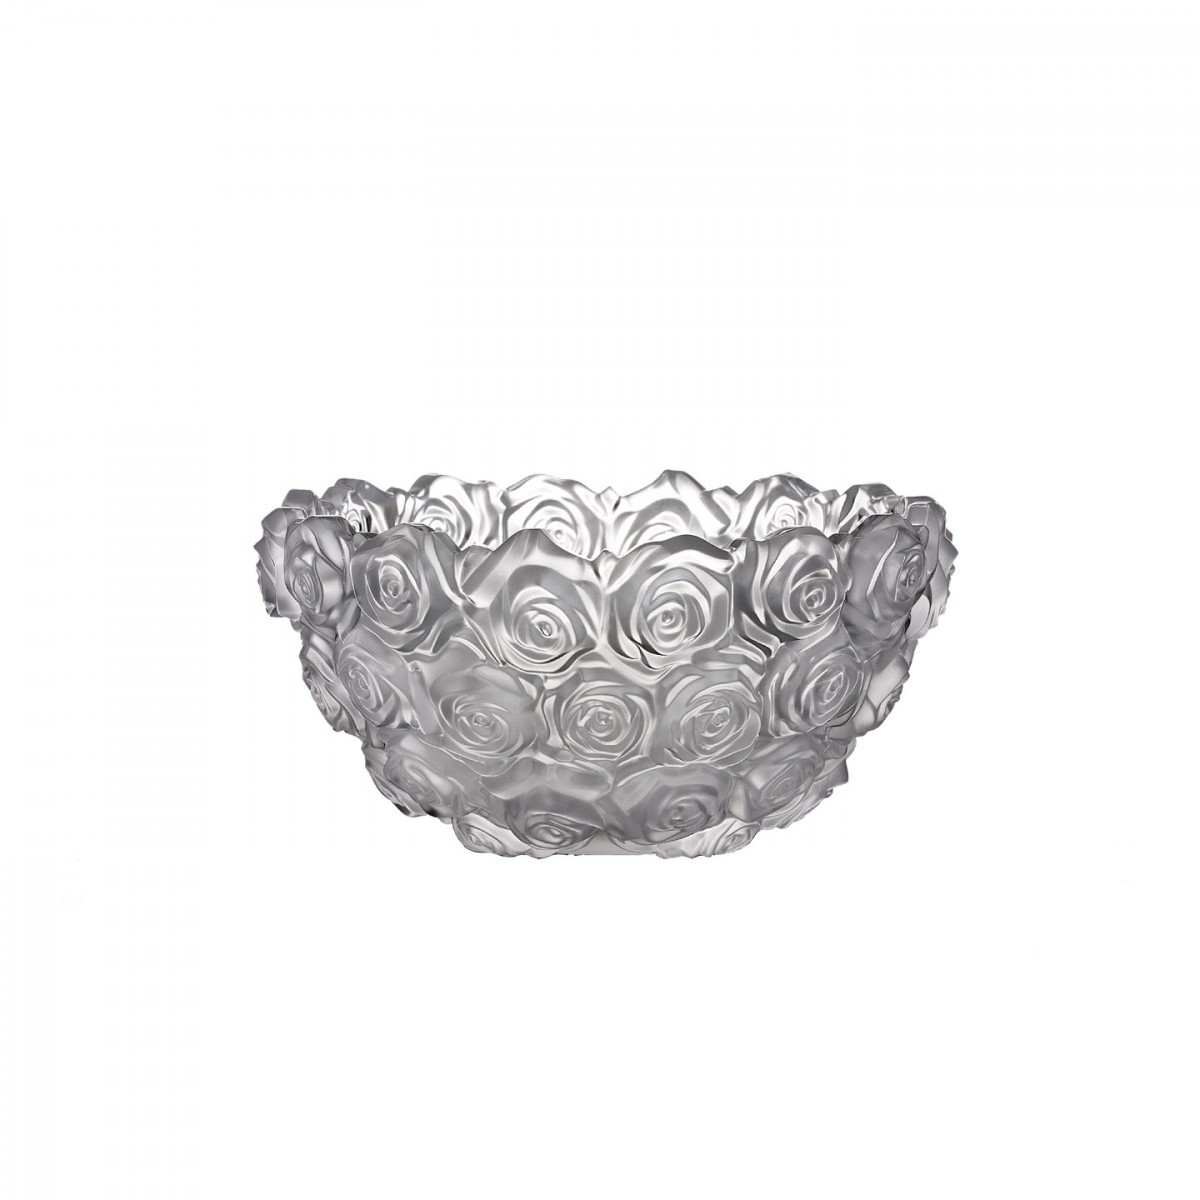 retired waterford crystal vase patterns of sunday rose 7in bridal bowl discontinued monique lhuillier in sunday rose 7in bridal bowl discontinued